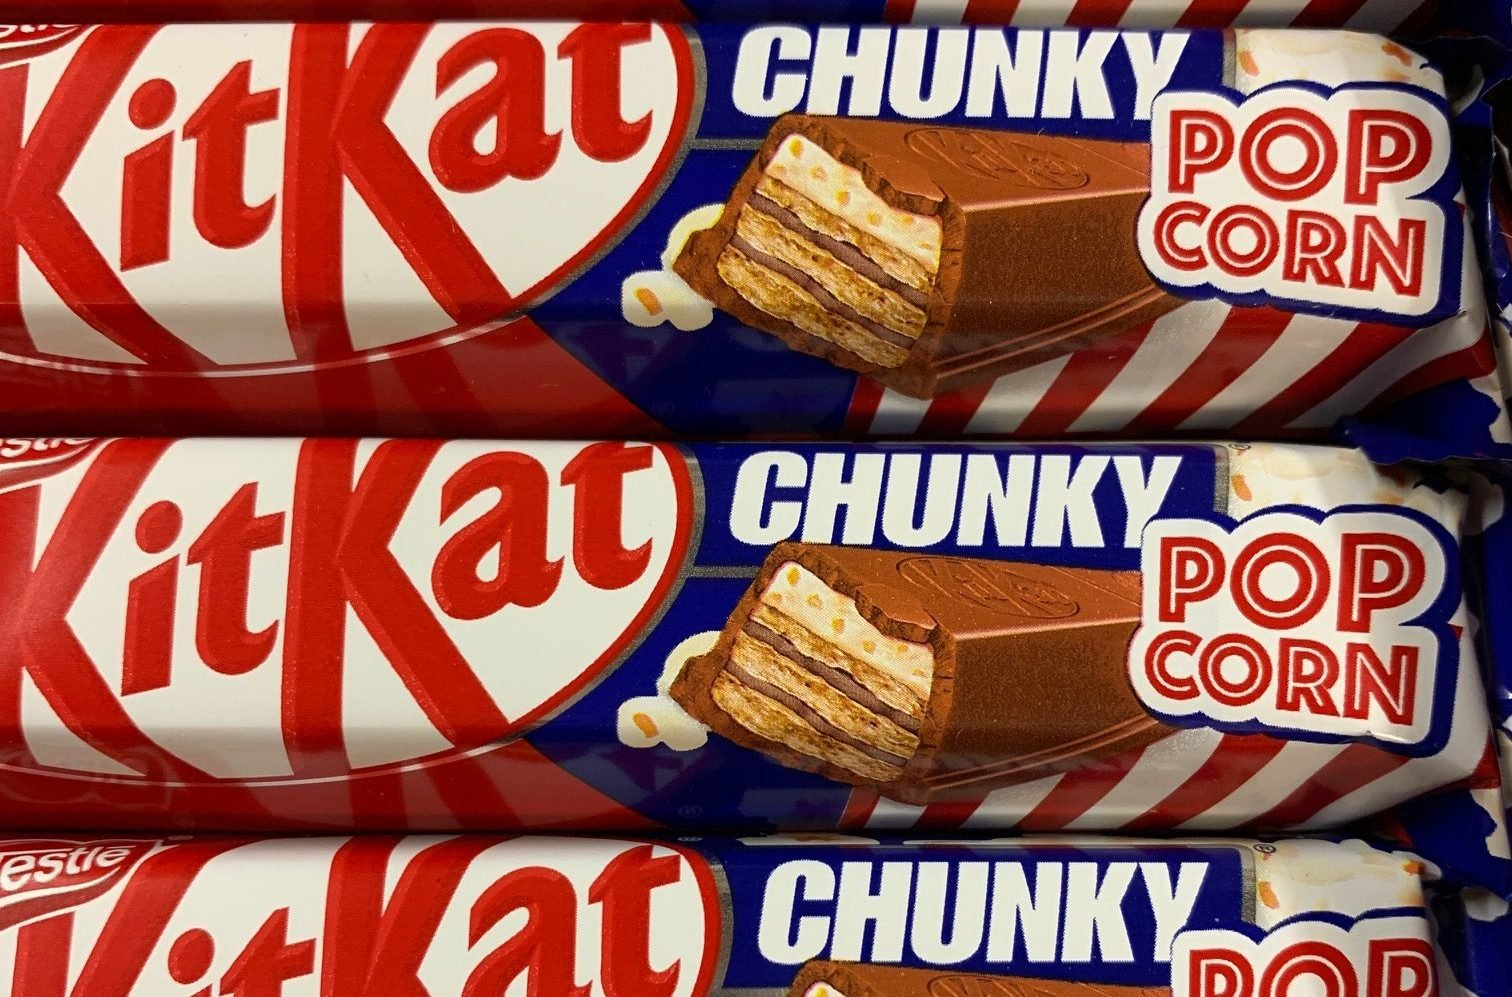 You can now buy popcorn-flavoured KitKat Chunky bars